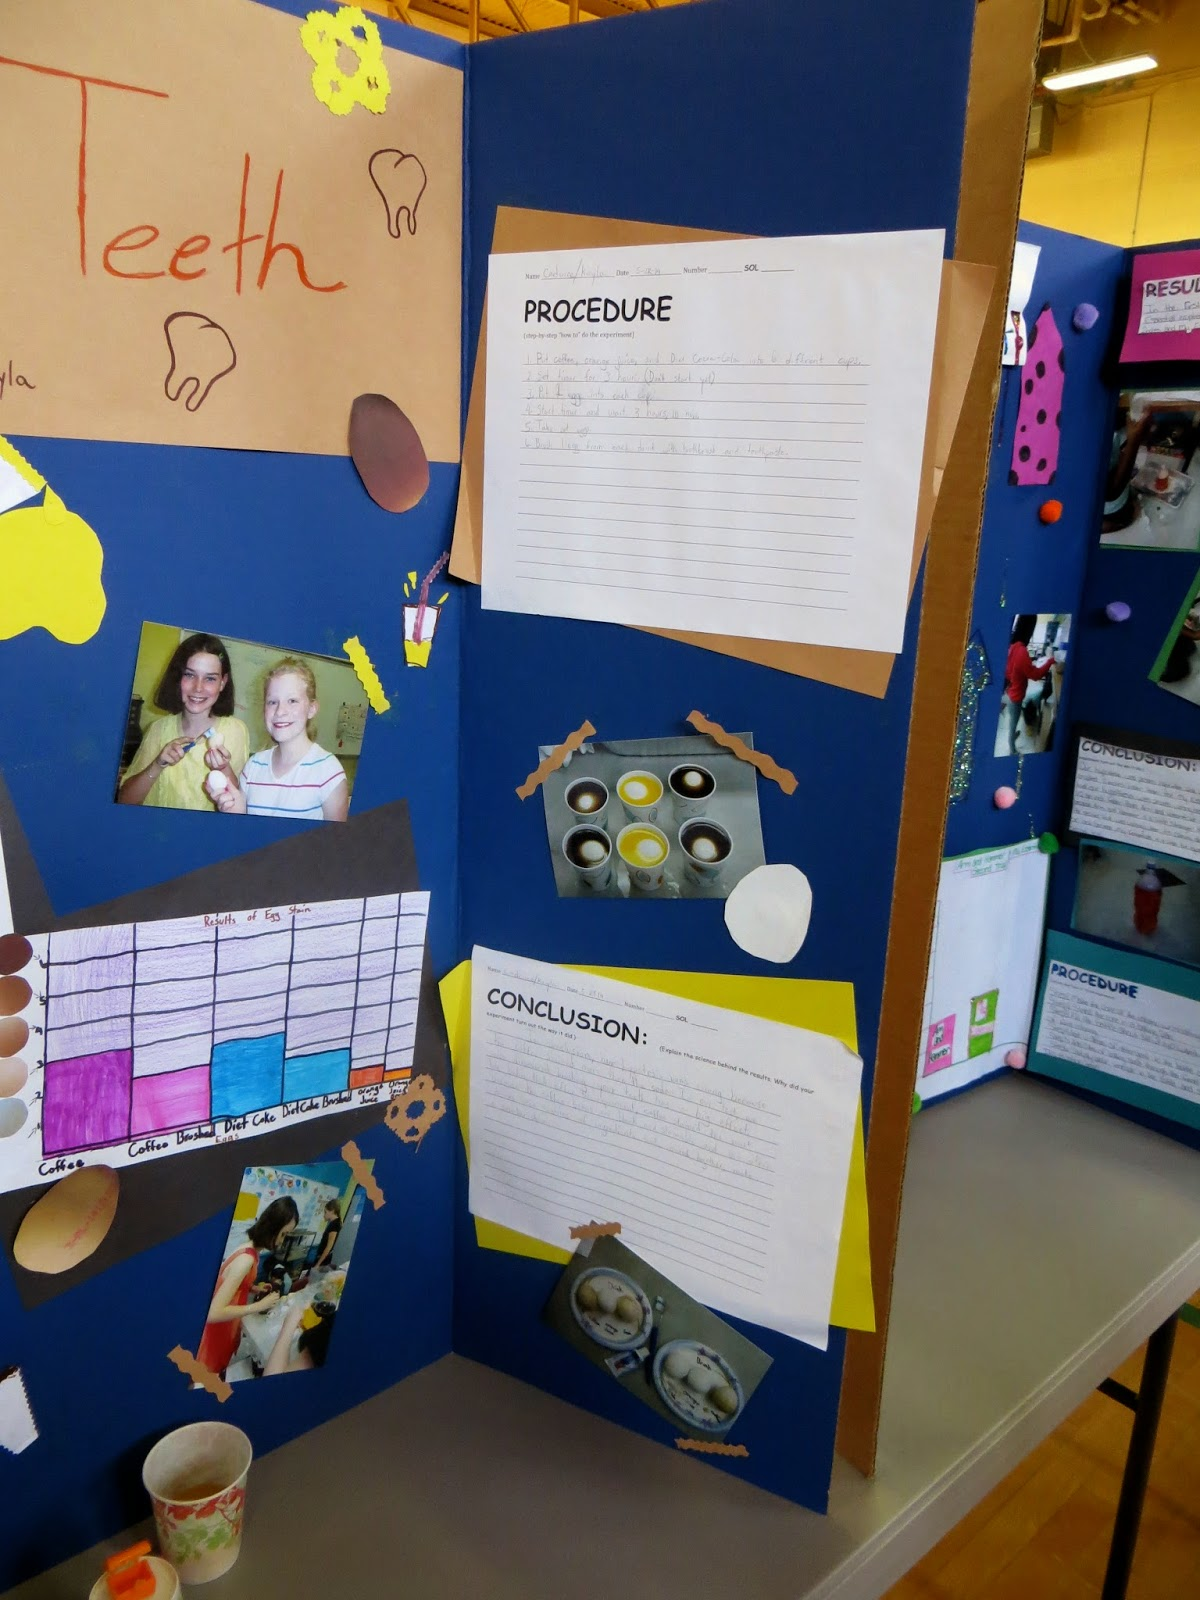 welcome to the krazy kingdom th grade science fair her poster was even cute i was so proud of her she was pretty excited is already plotting out her science project for the 6th grade science fair